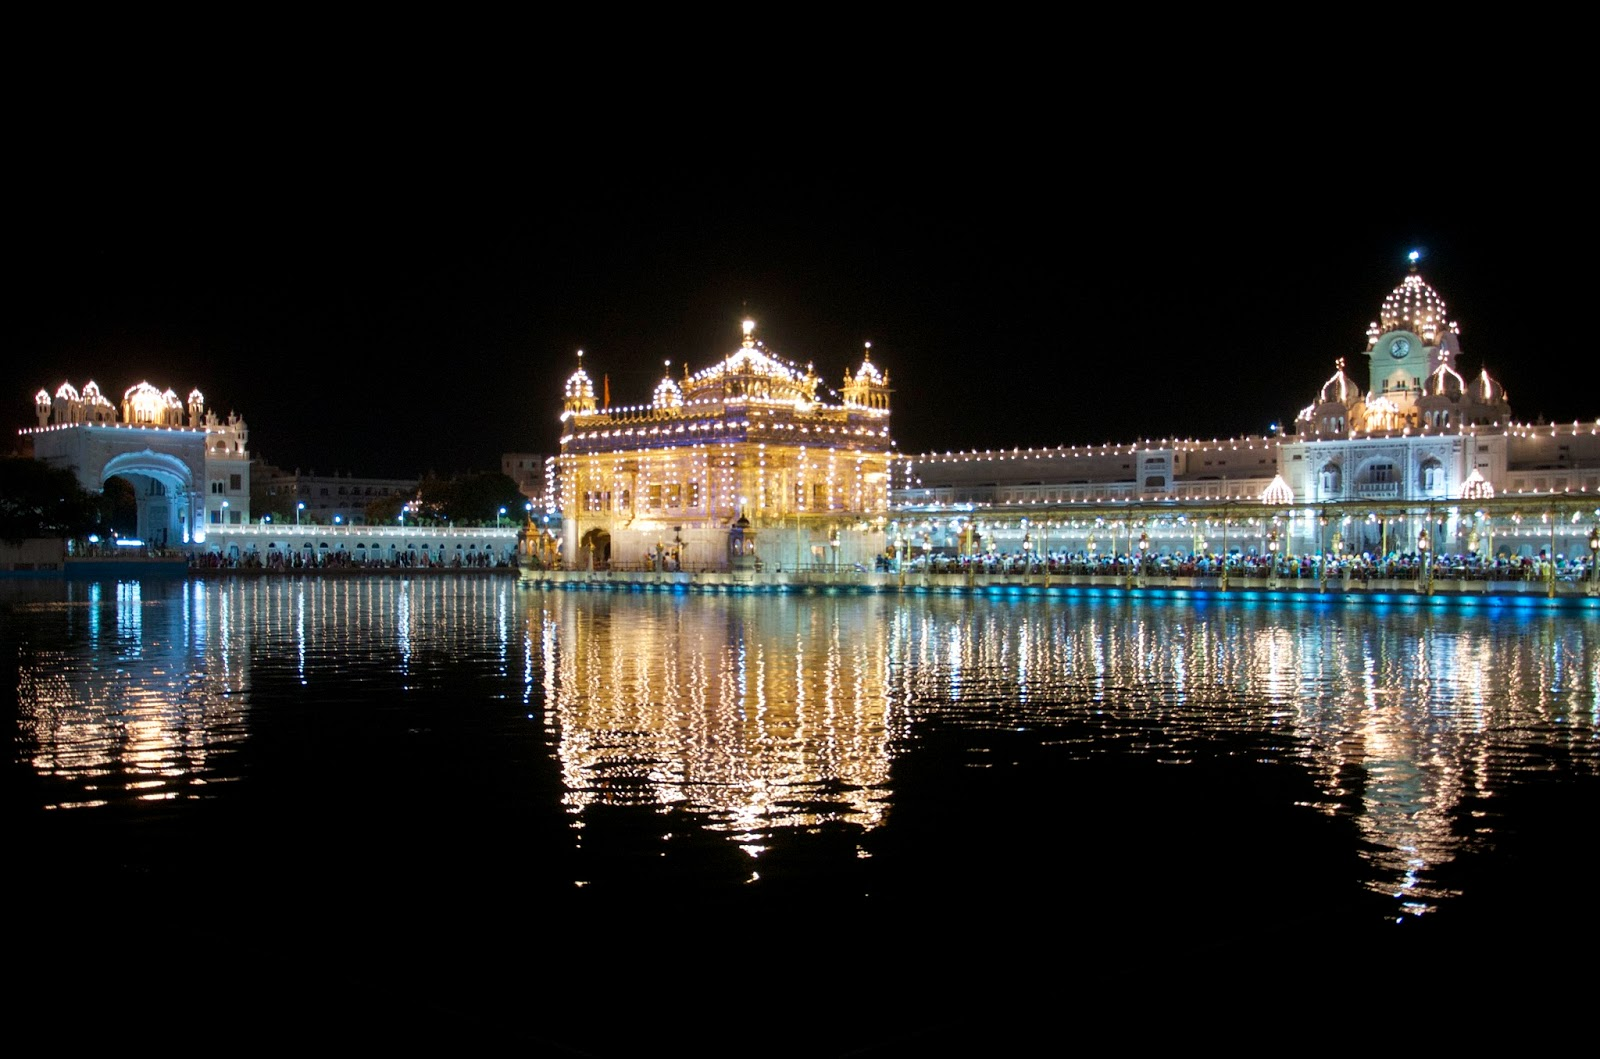 BombayJules: Scenes from The Golden Temple, Amritsar